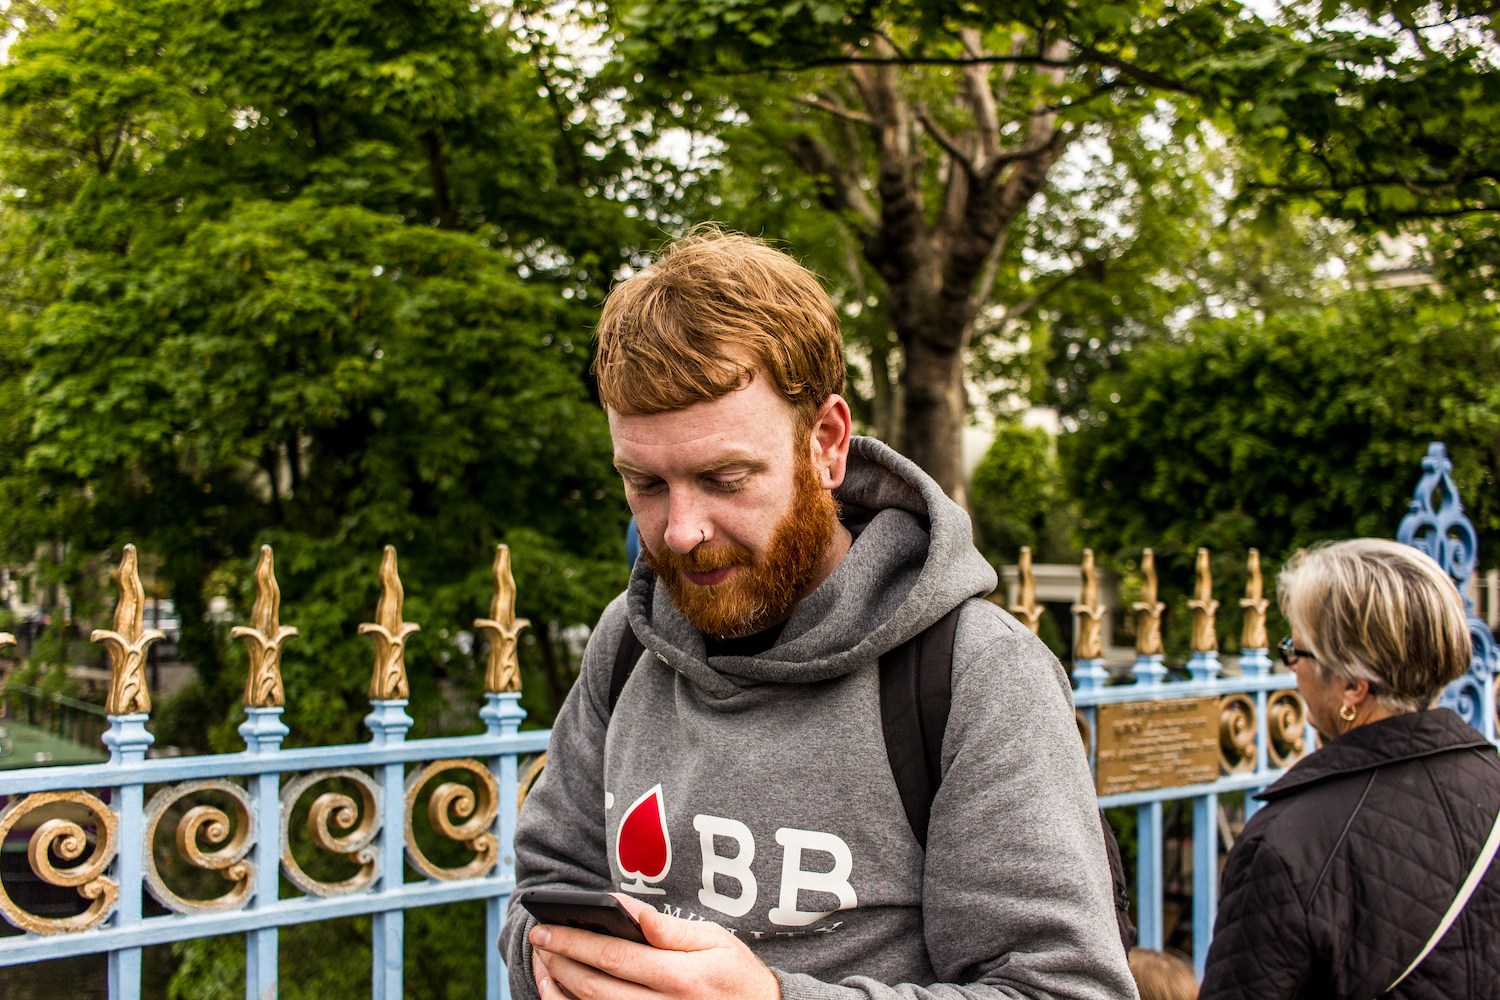 Professional Photography White Man Beginning Ten Mile Charity Walk Wearing Grey Hoody Standing Looking At Phone With Green Trees In Little Venice Paddington London